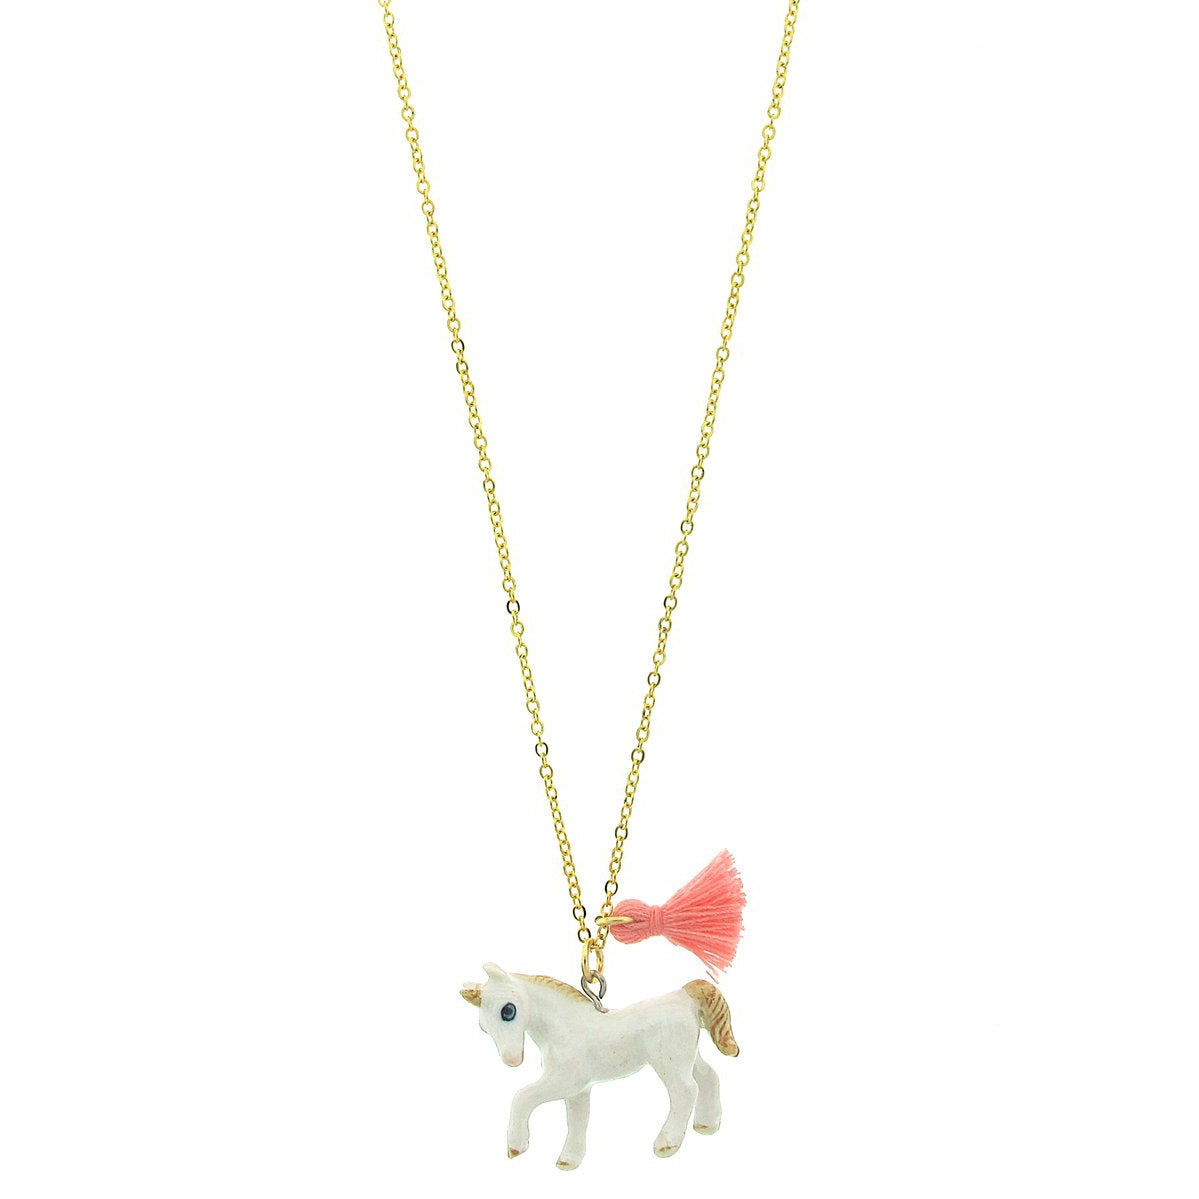 Lil' Critters Unicorn Necklace